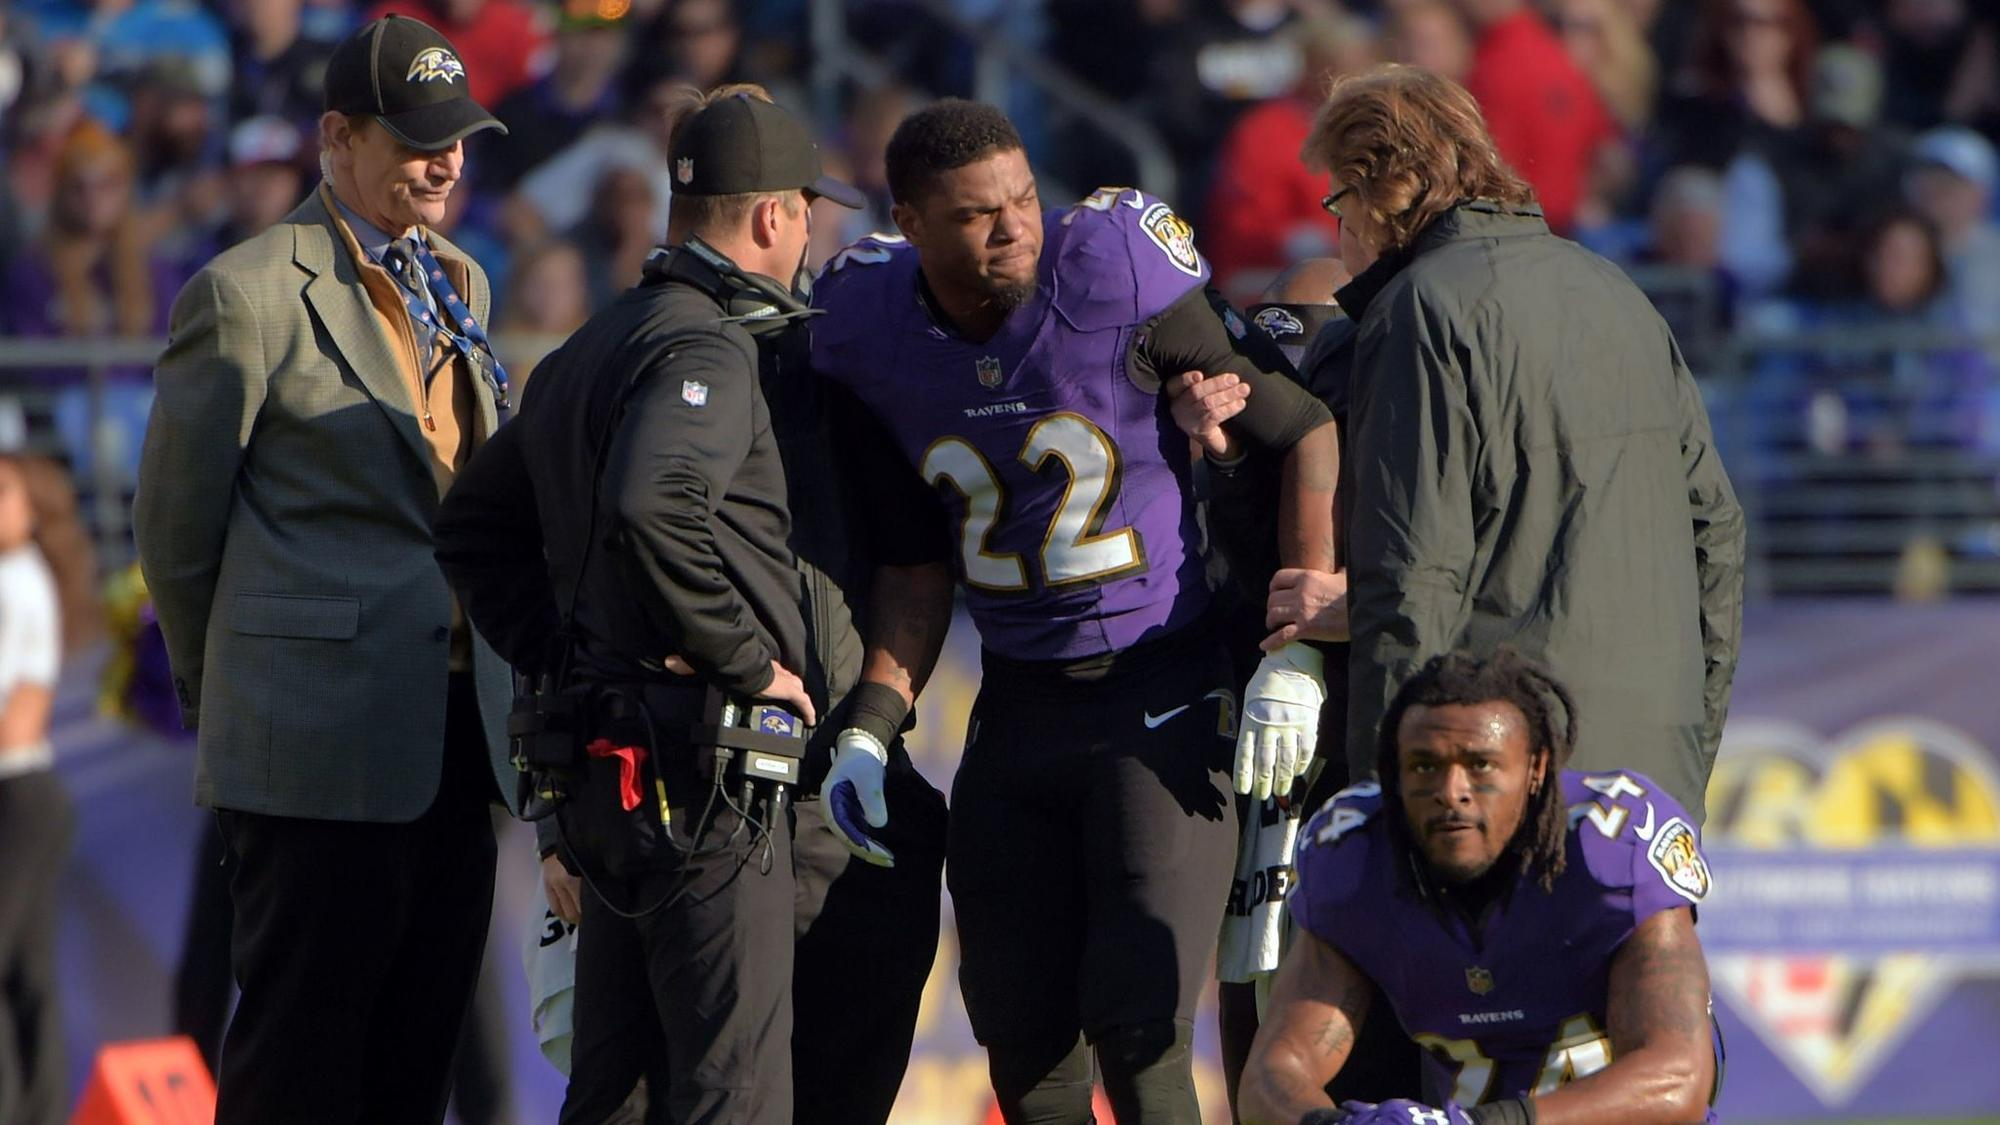 Bs-sp-ravens-jimmy-smith-out-for-season-20171203